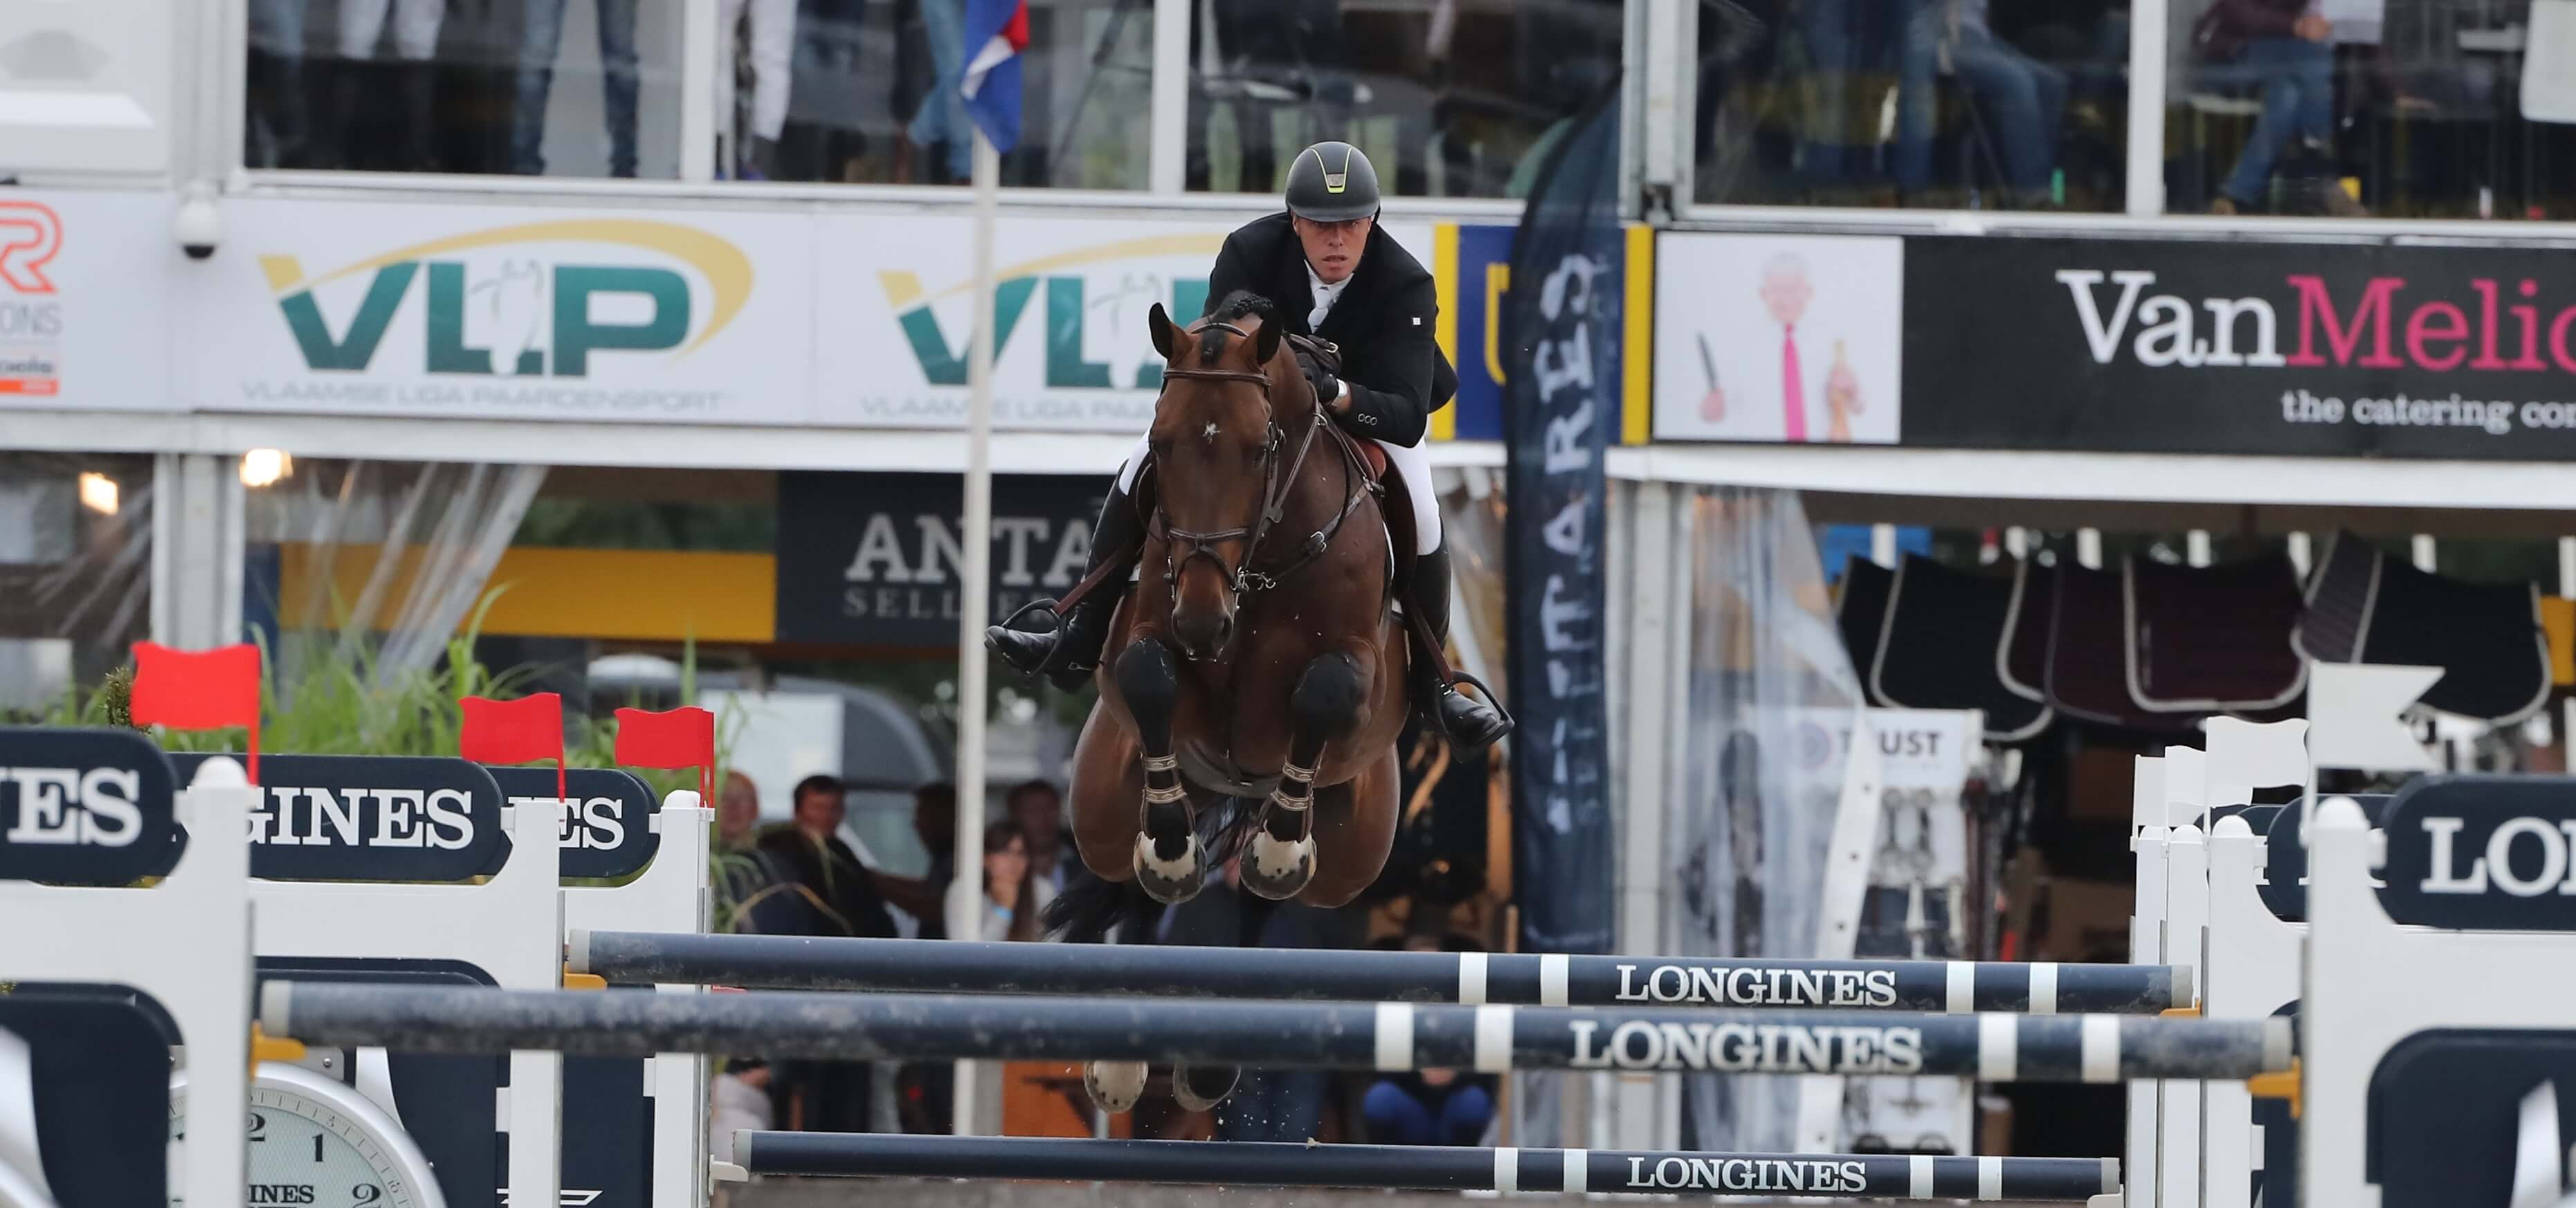 Exquisite start of the Stallions at Jumping Mechelen!